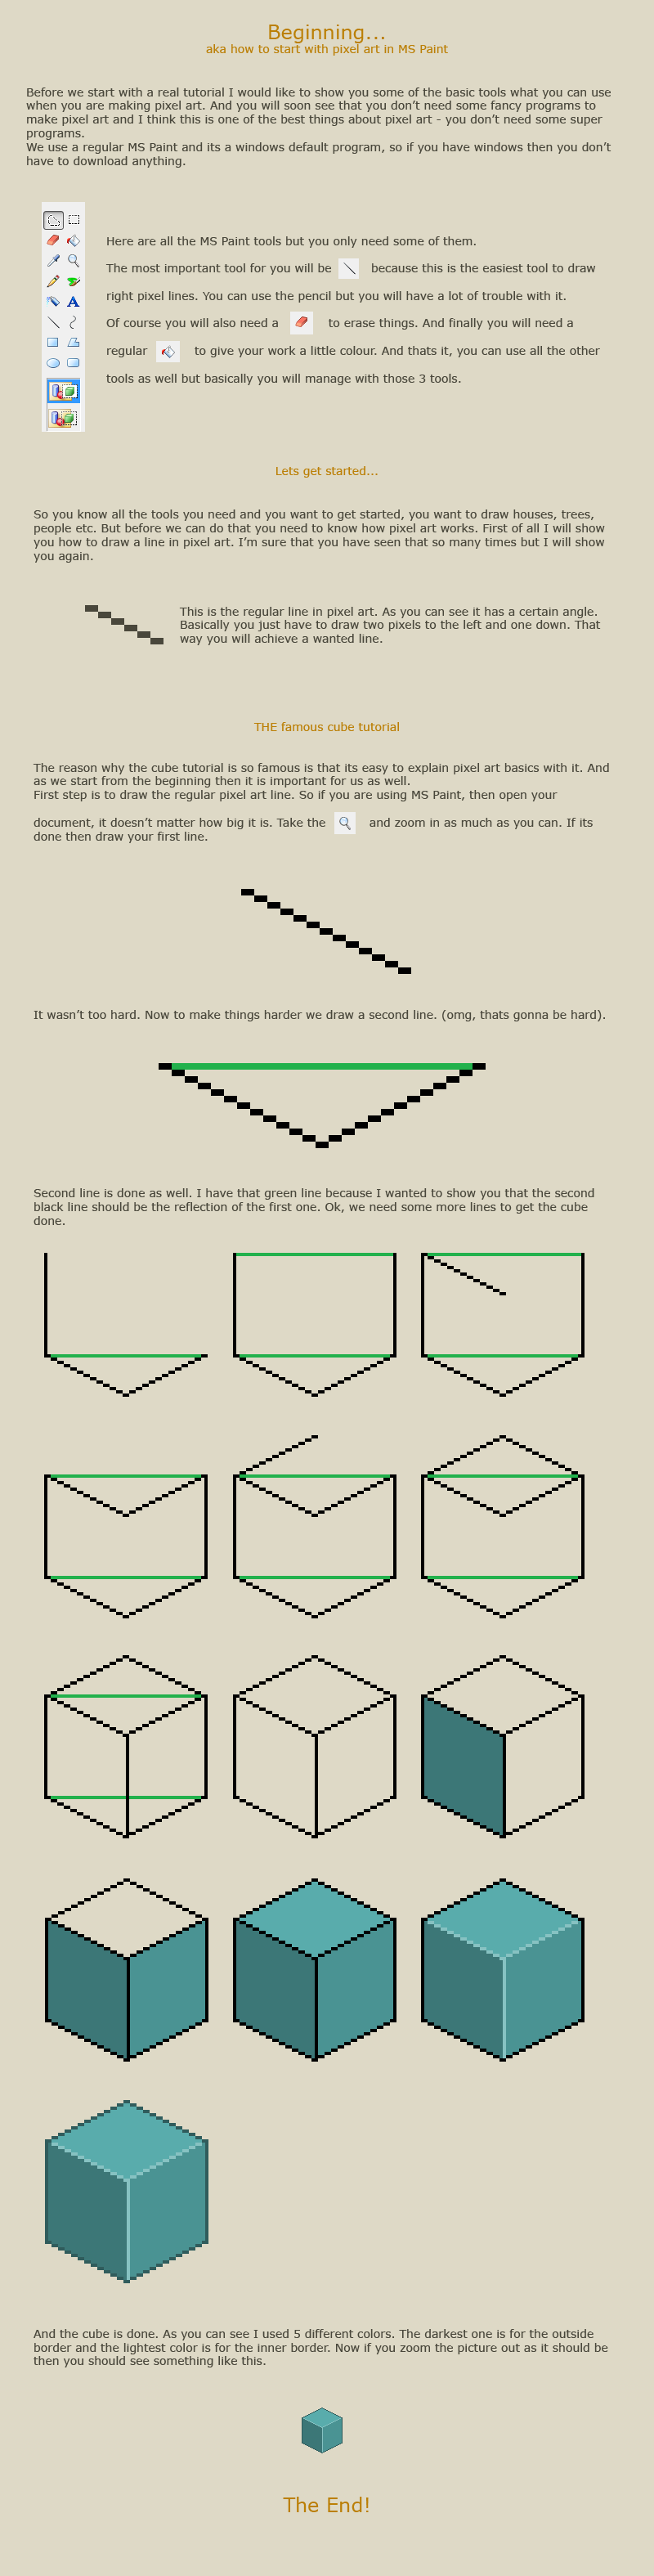 How to start with pixel art by vanmall